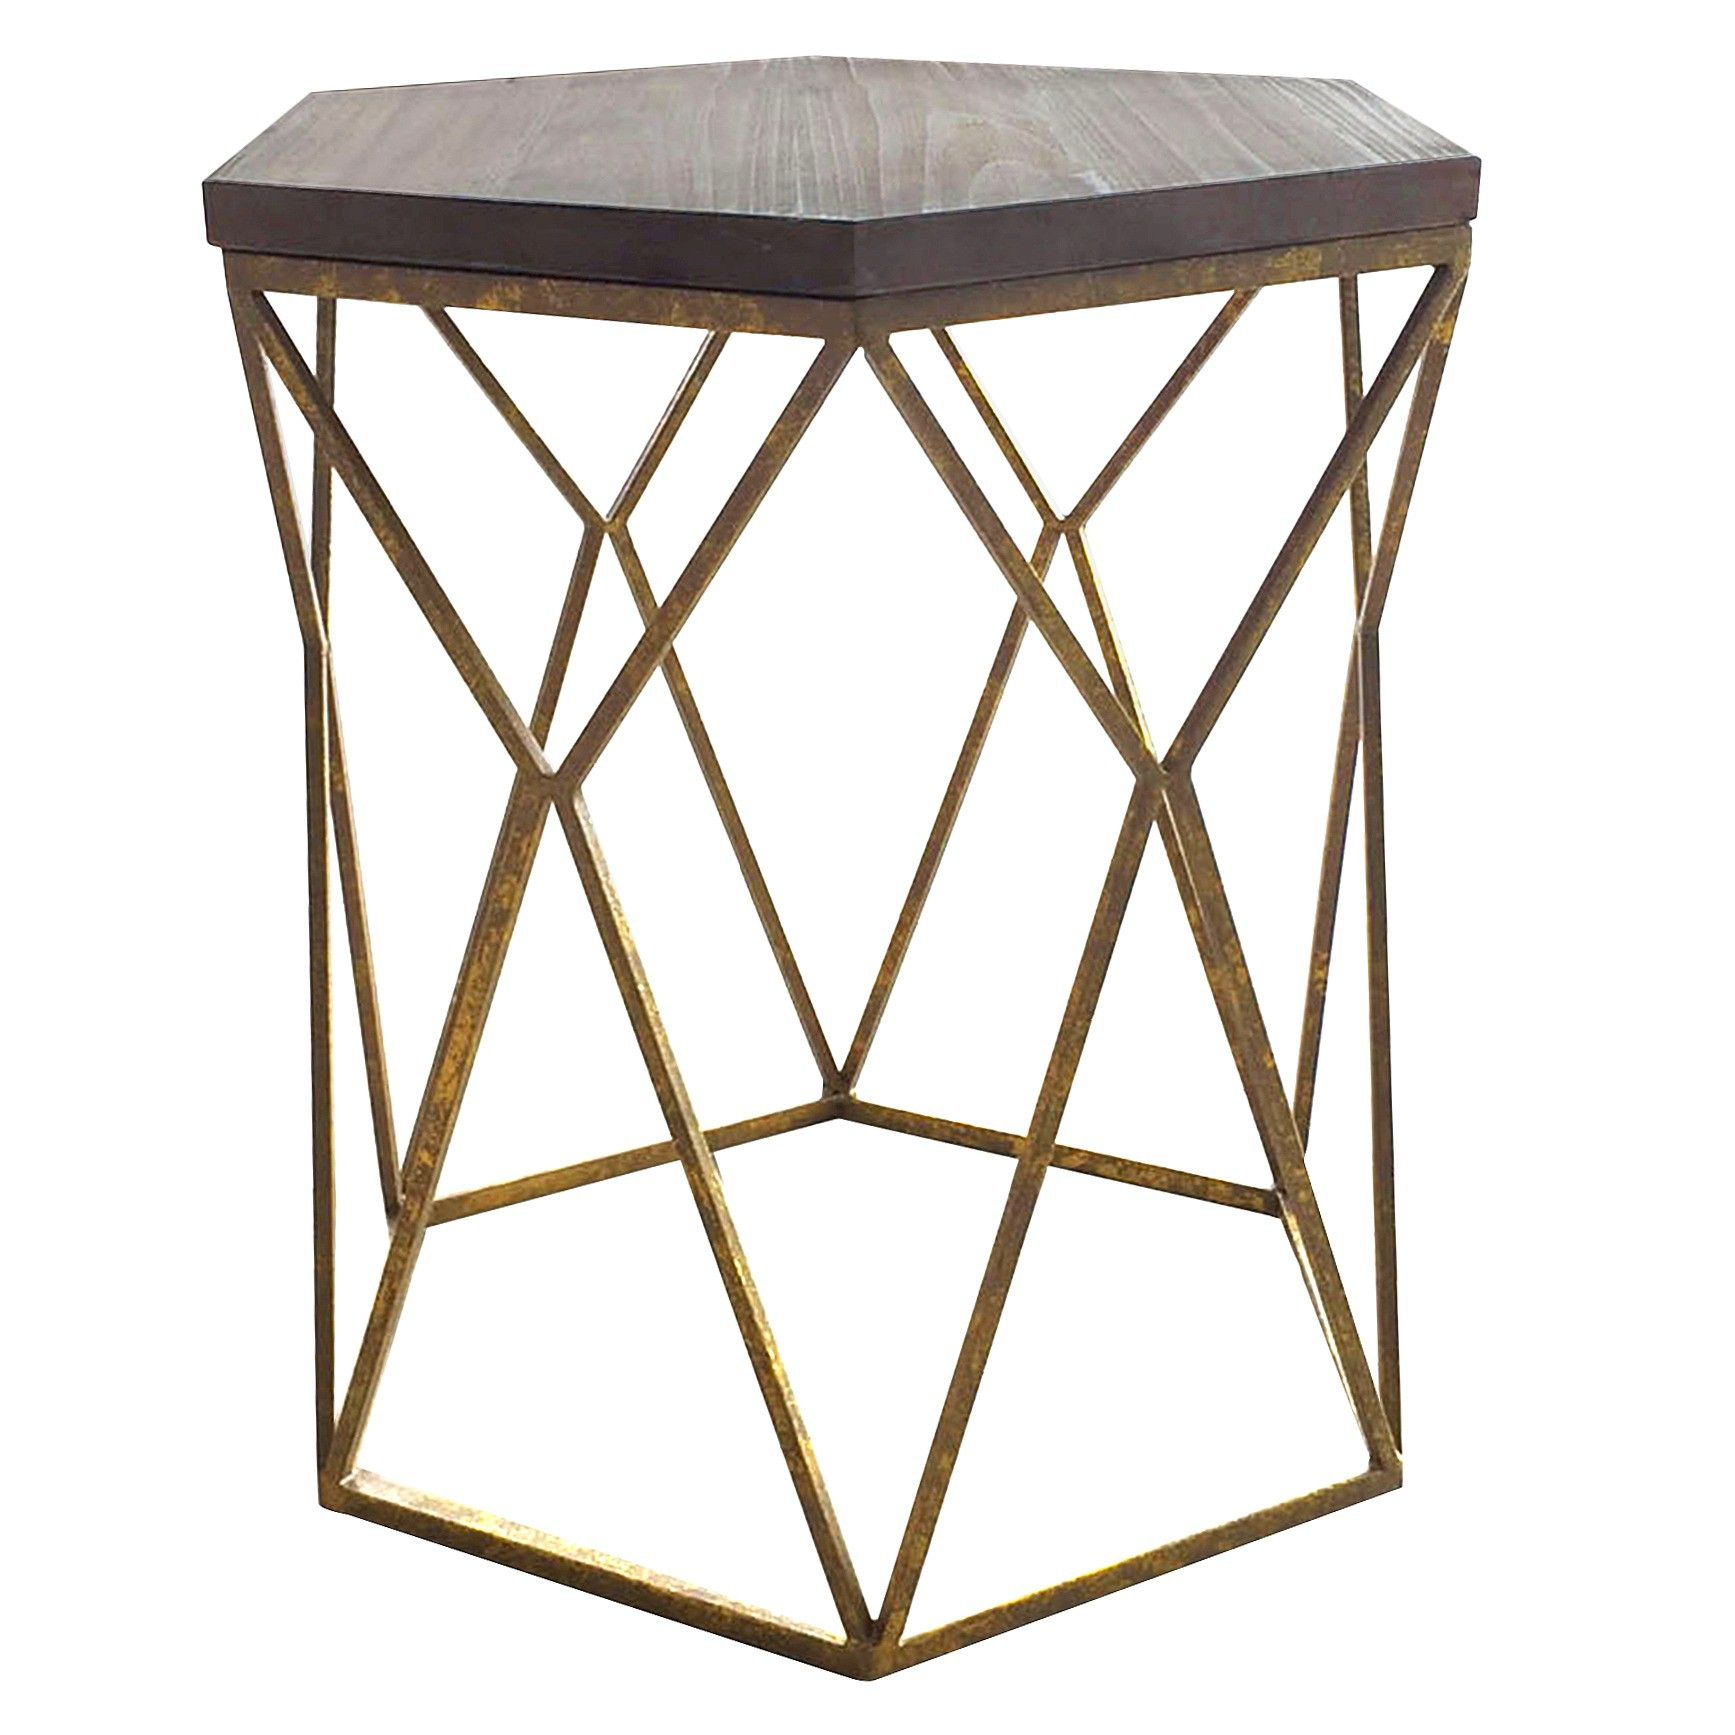 contemporary and artistic the threshold metal hexagon table with accent wood top brings decadent air your space this sculptural piece home furniture italian decor thin sofa patio